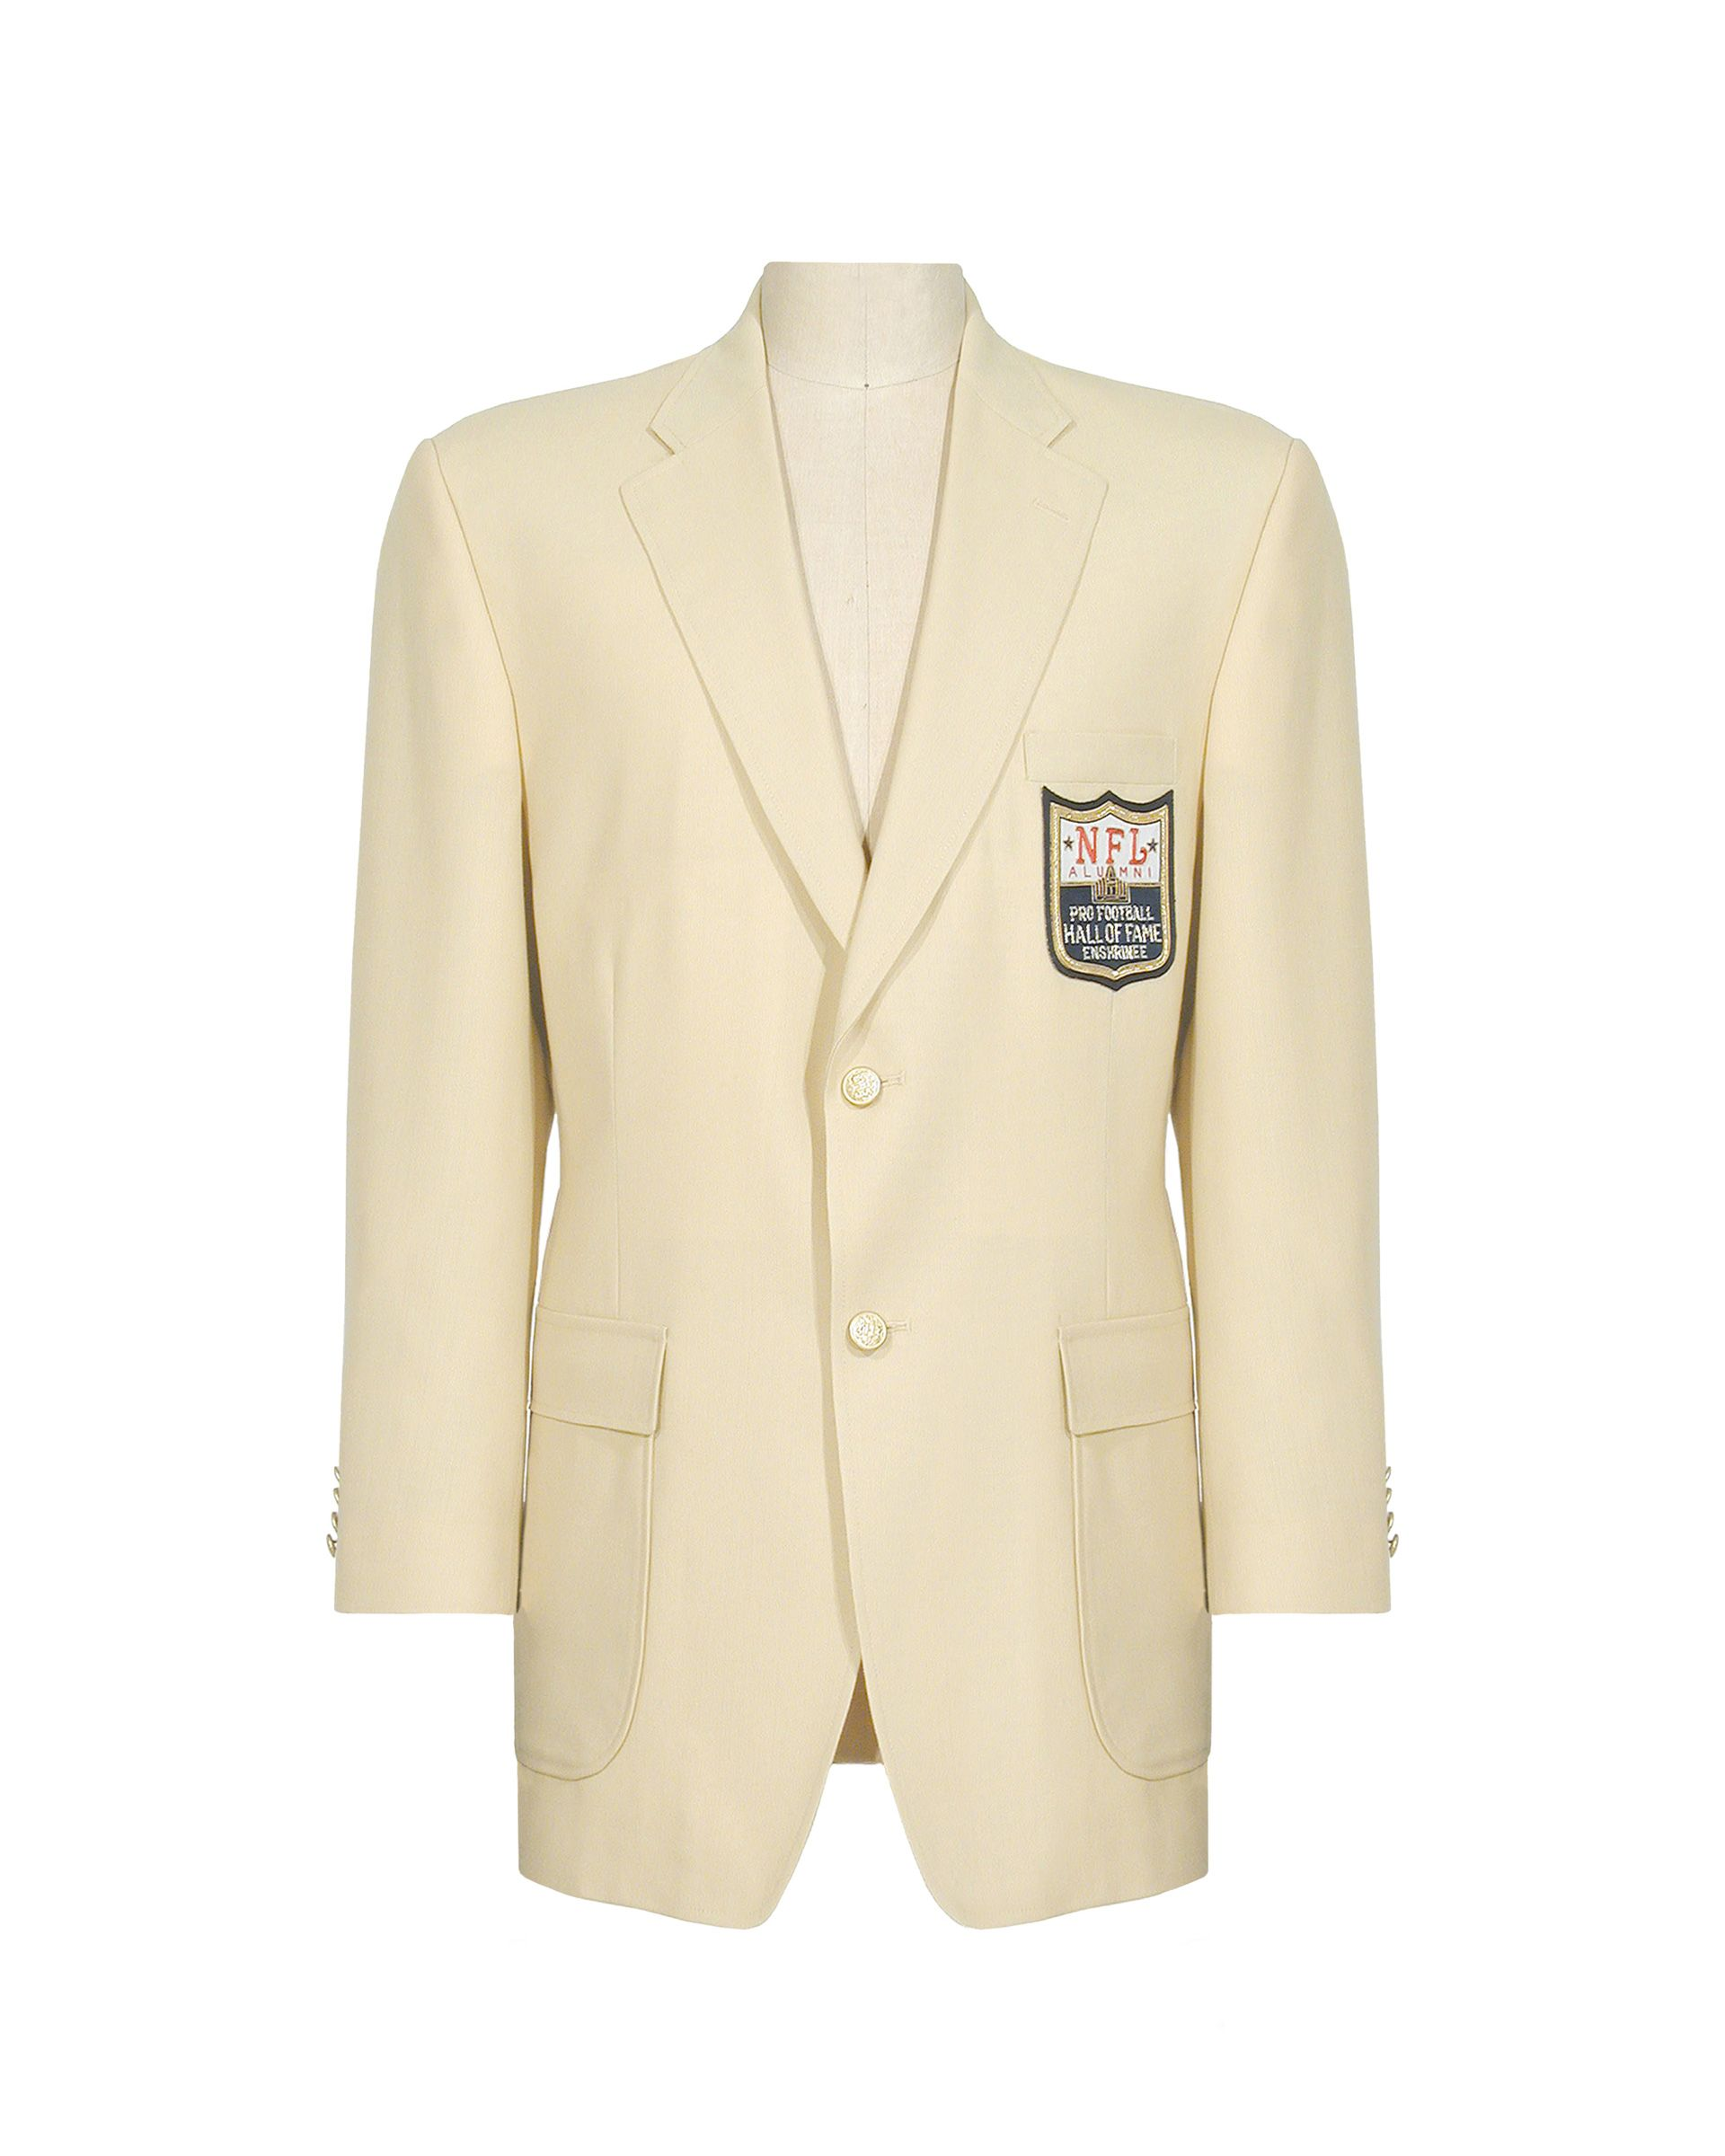 finest selection eda4a ee5b2 THE JACKET OF NFL HEAVEN..PRO FOOTBALL HALL OF FAME IN ...